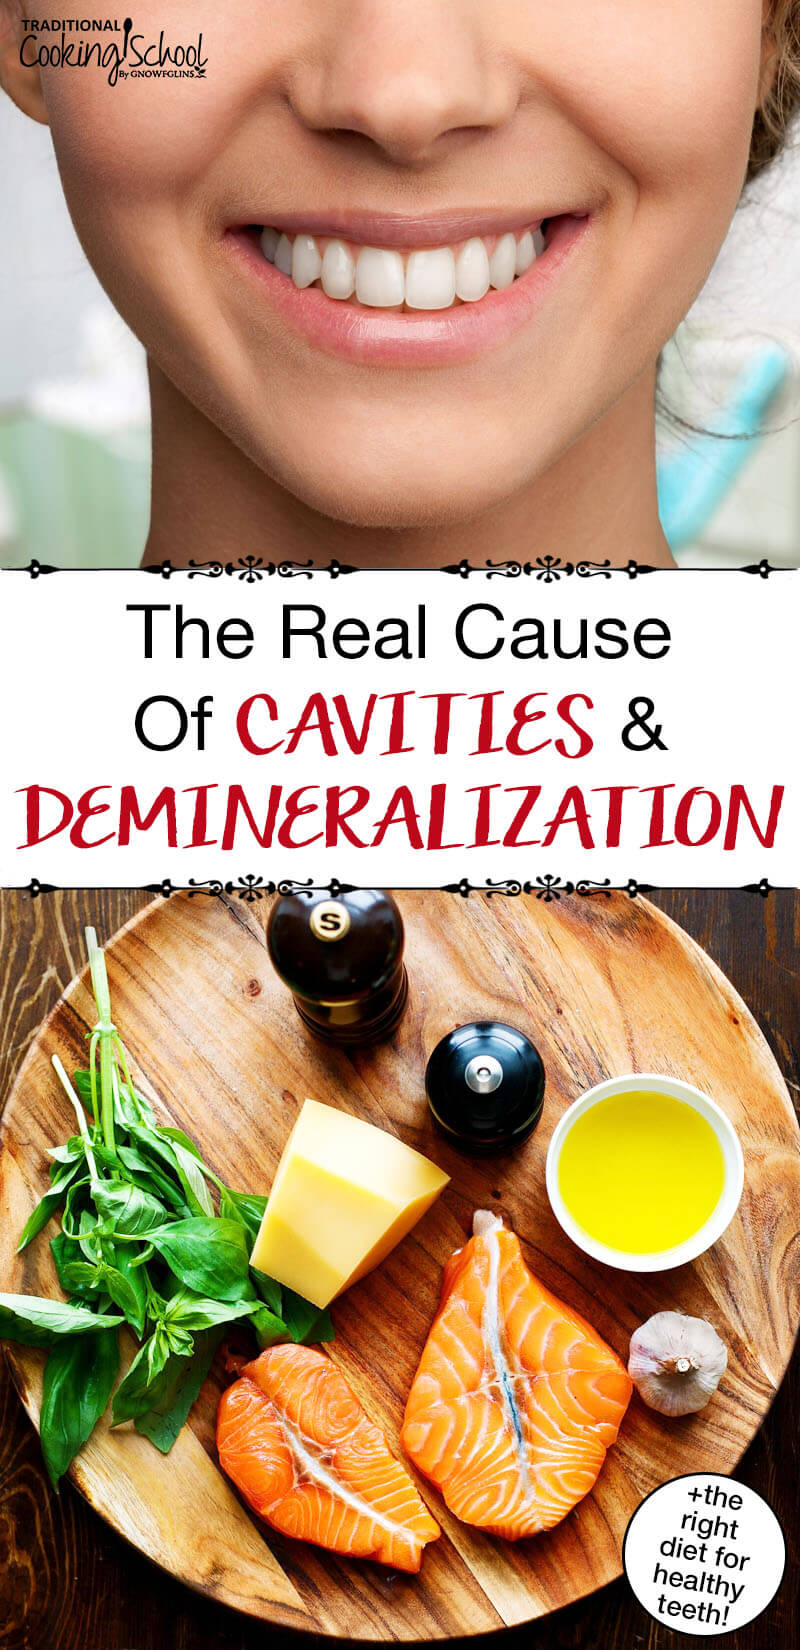 Despite the myths, sugar and bacteria aren't the real culprits that cause tooth decay. Learn the REAL cause of cavities and demineralization, the foods you should avoid if you've experienced tooth decay (hint: over 85% of Americans have tooth decay!), plus the RIGHT diet for healthy teeth.